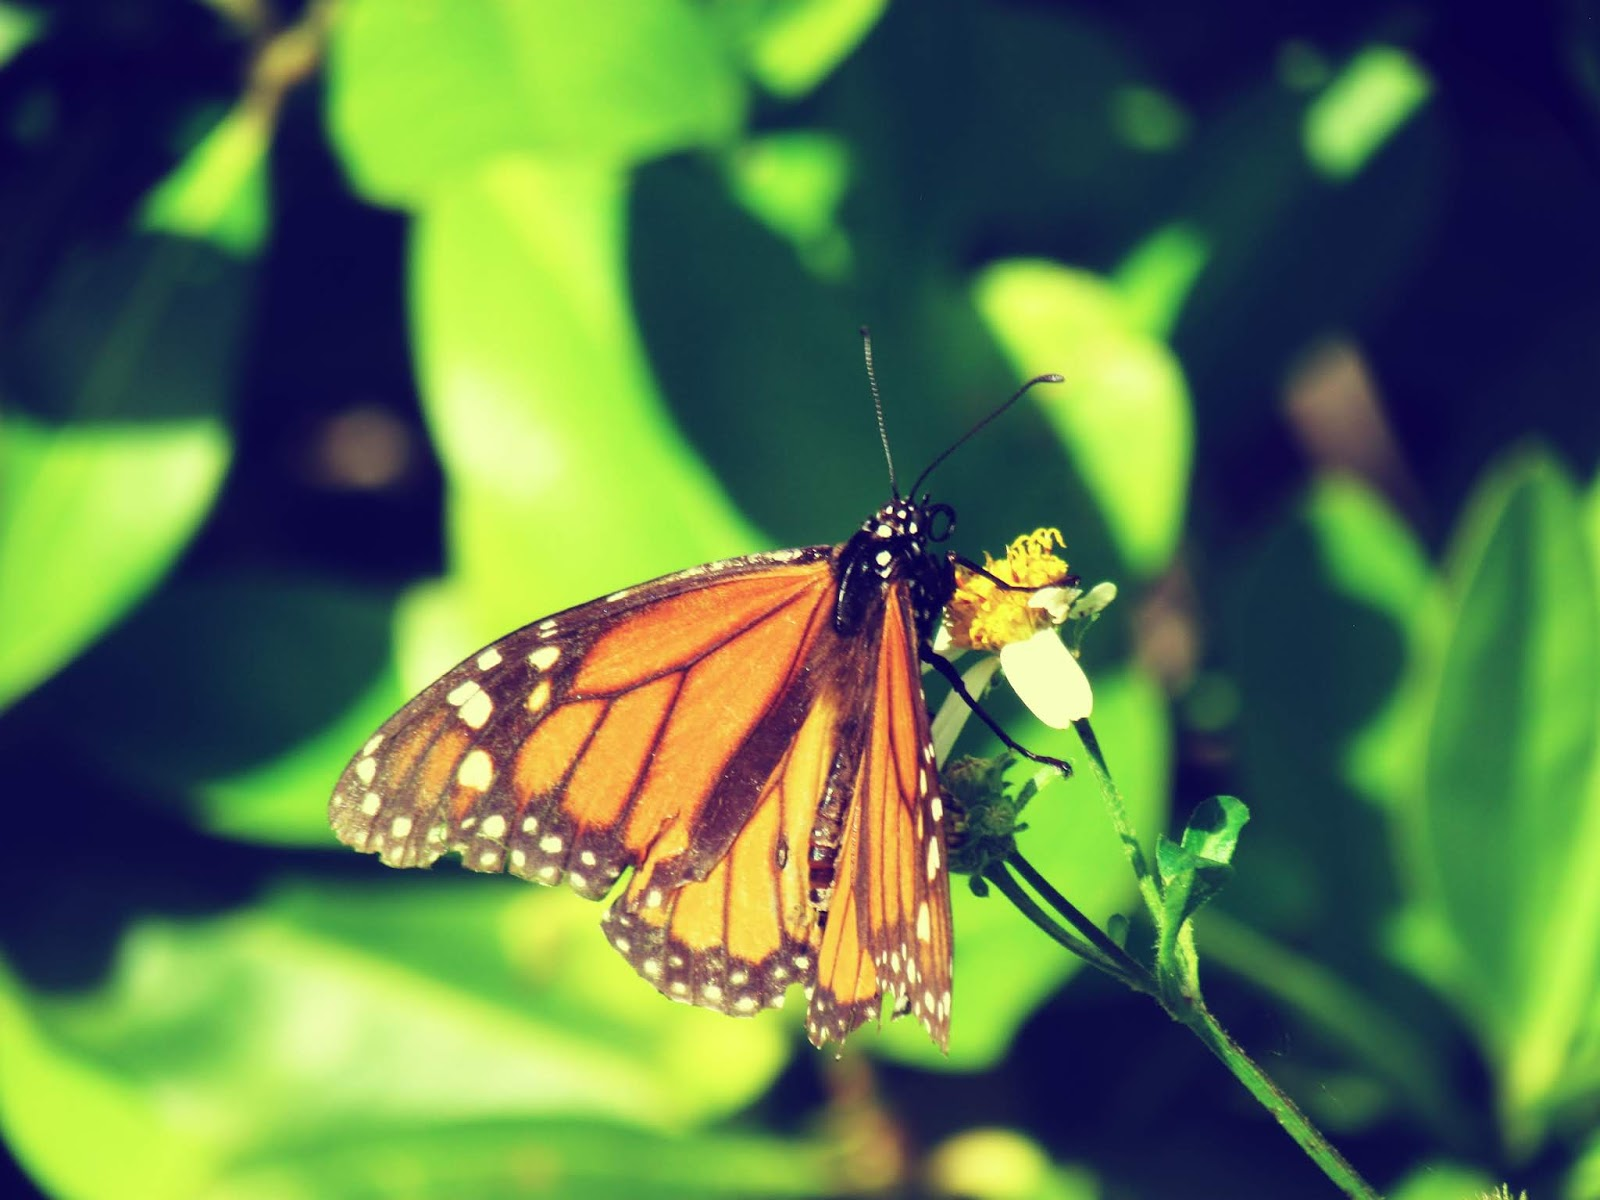 Butterfly Fairy Queen and Moon Ritual on Green Plants in Nature